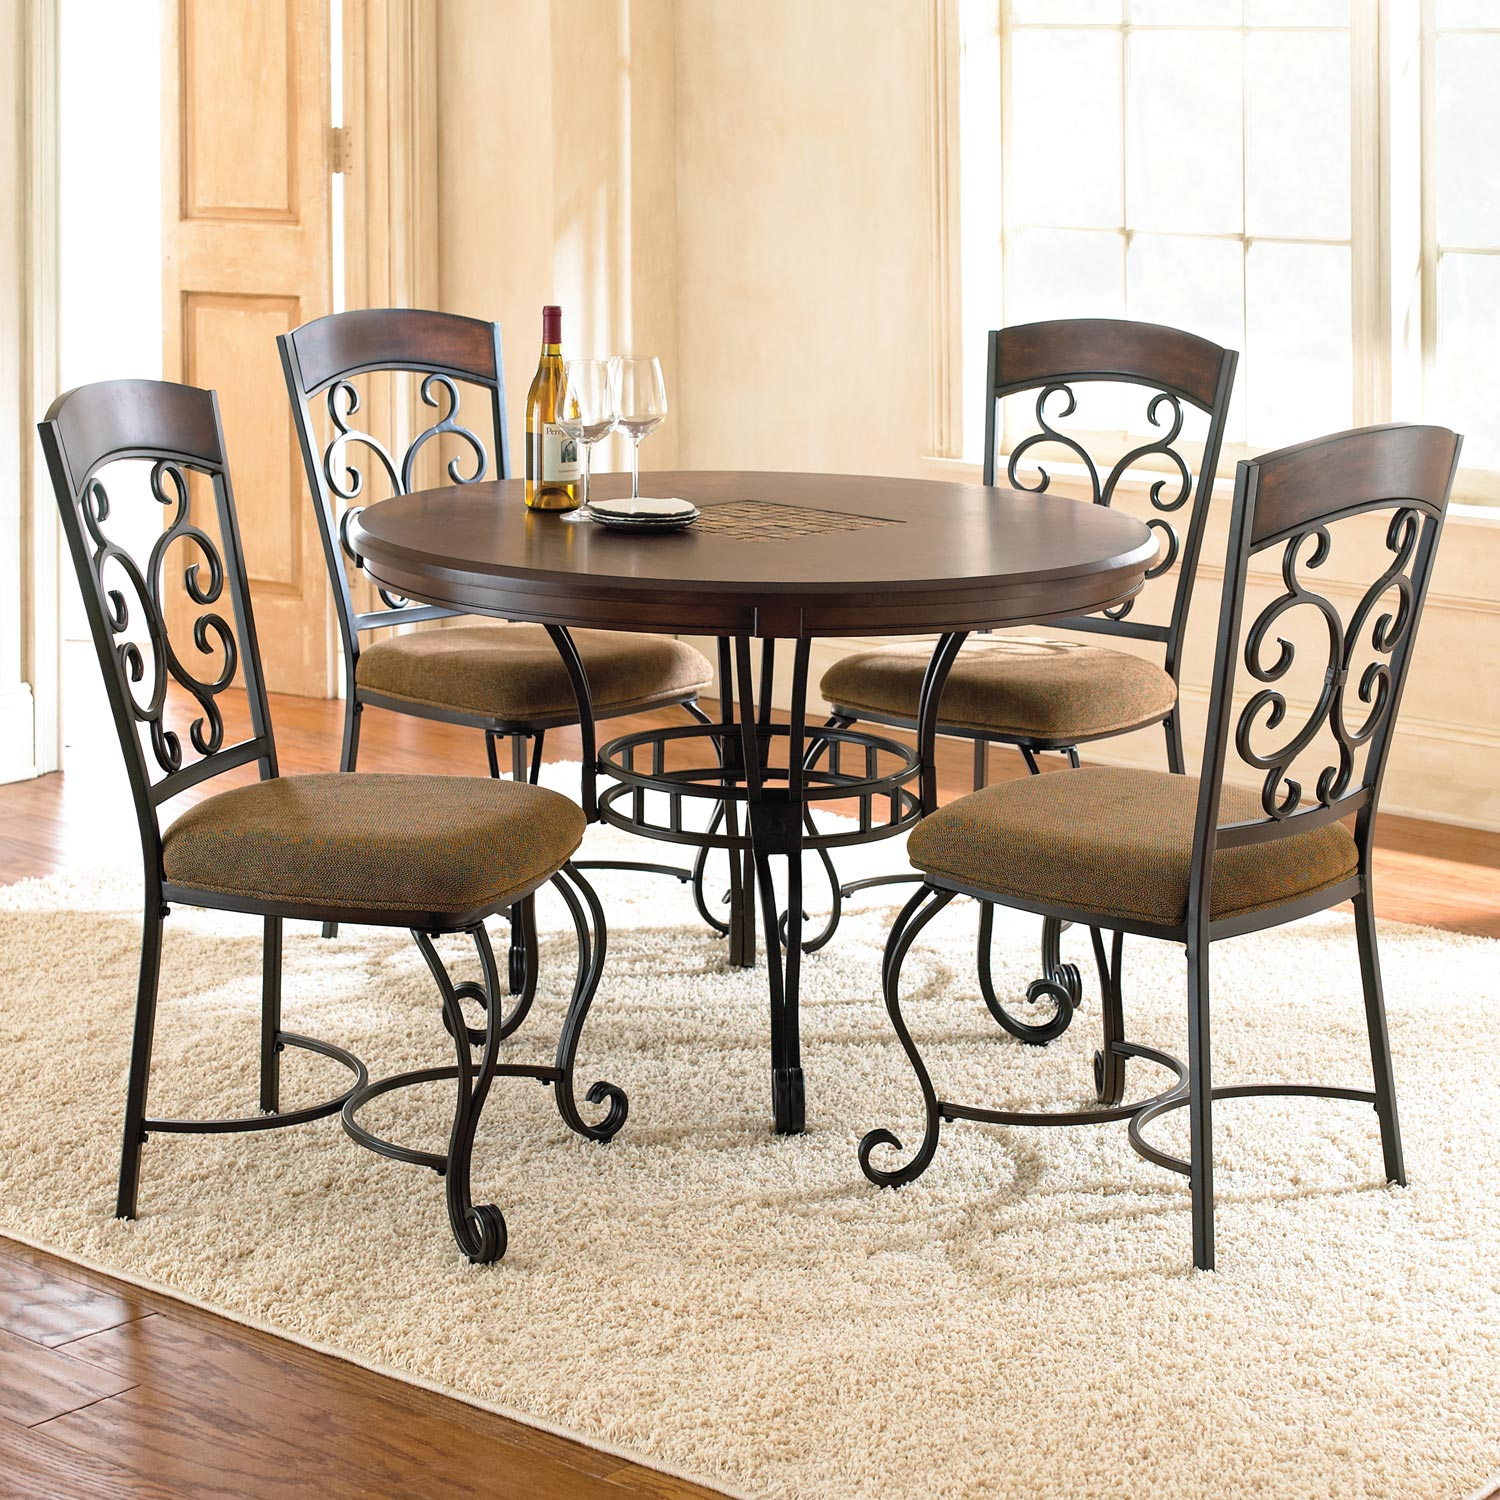 Wrought Iron Kitchen Chairs: Wood, Wrought Iron, Brown Fabric (Set